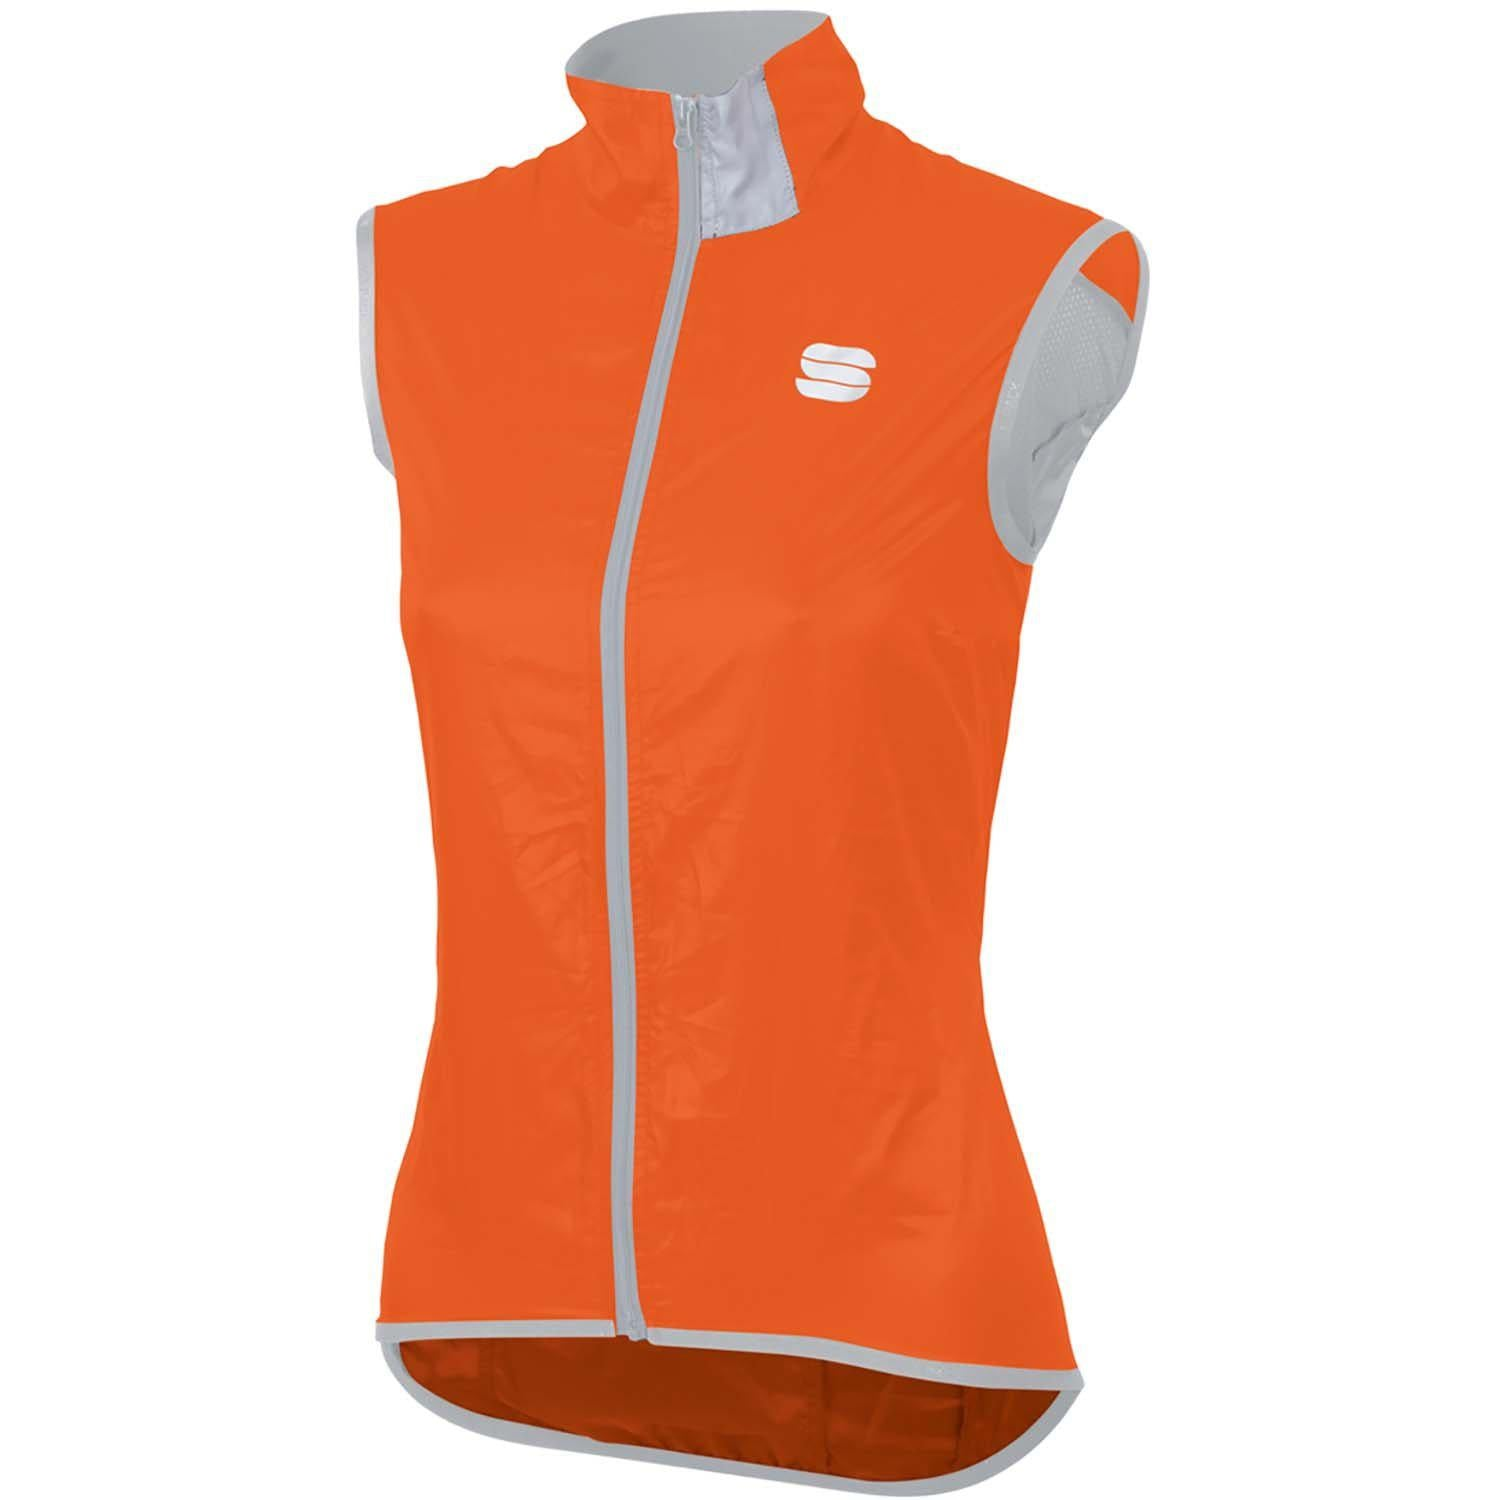 Sportful-Sportful Hot Pack Easylight Women's Vest-Orange SDR-XS-SF020298501-saddleback-elite-performance-cycling